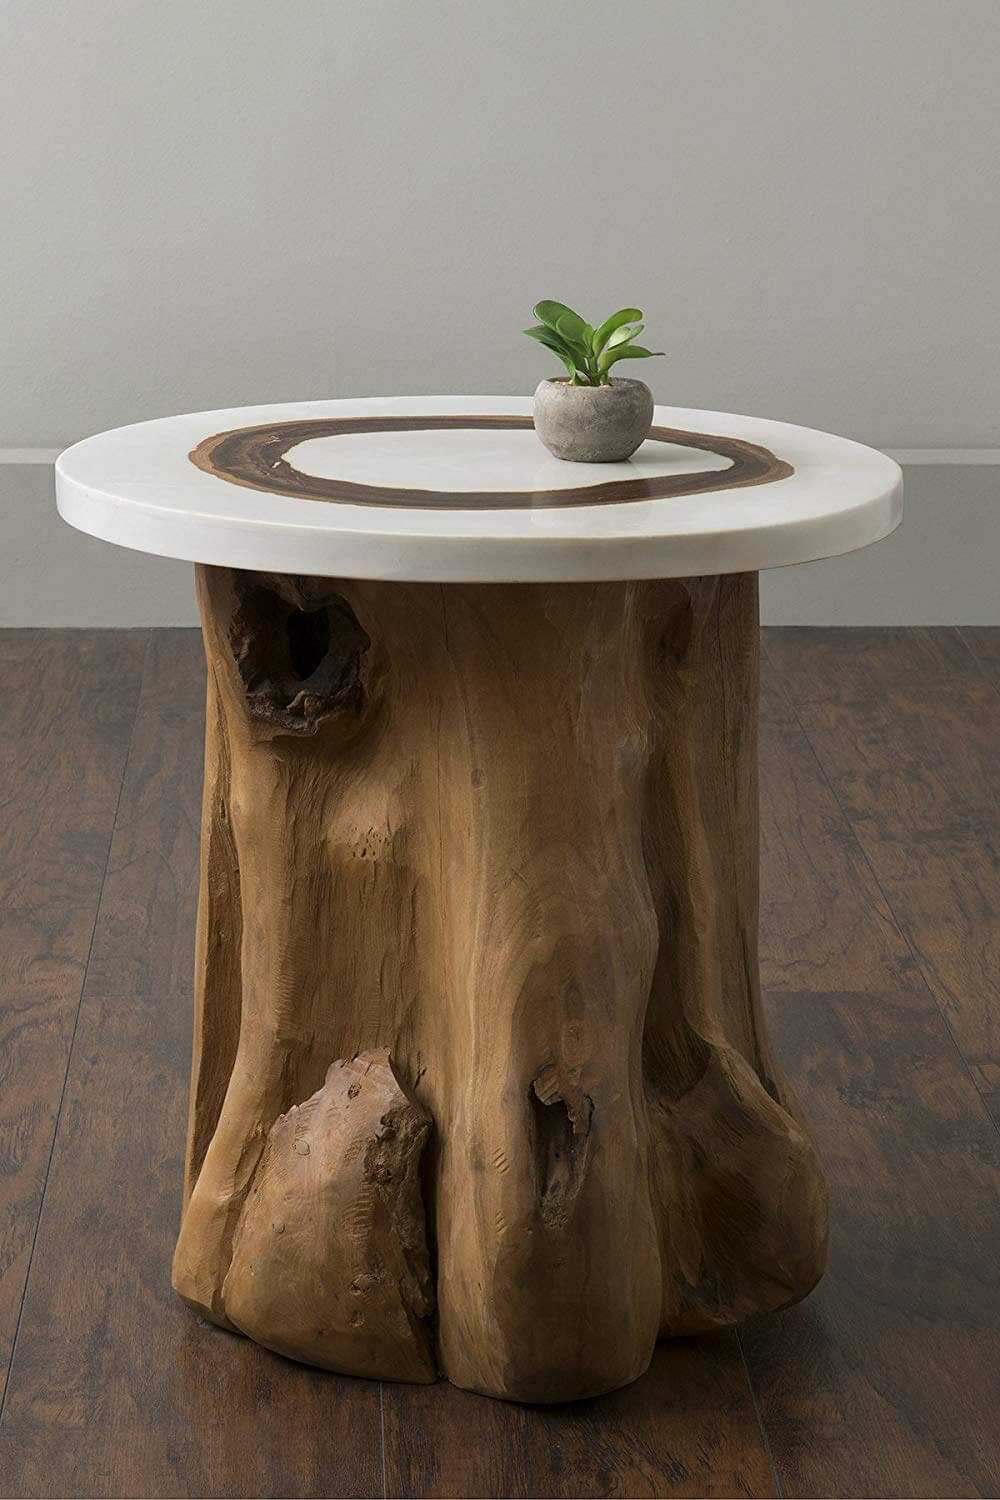 NATURAL ROUND WOODEN TABLE FURNITURE FOR LIVING ROOM